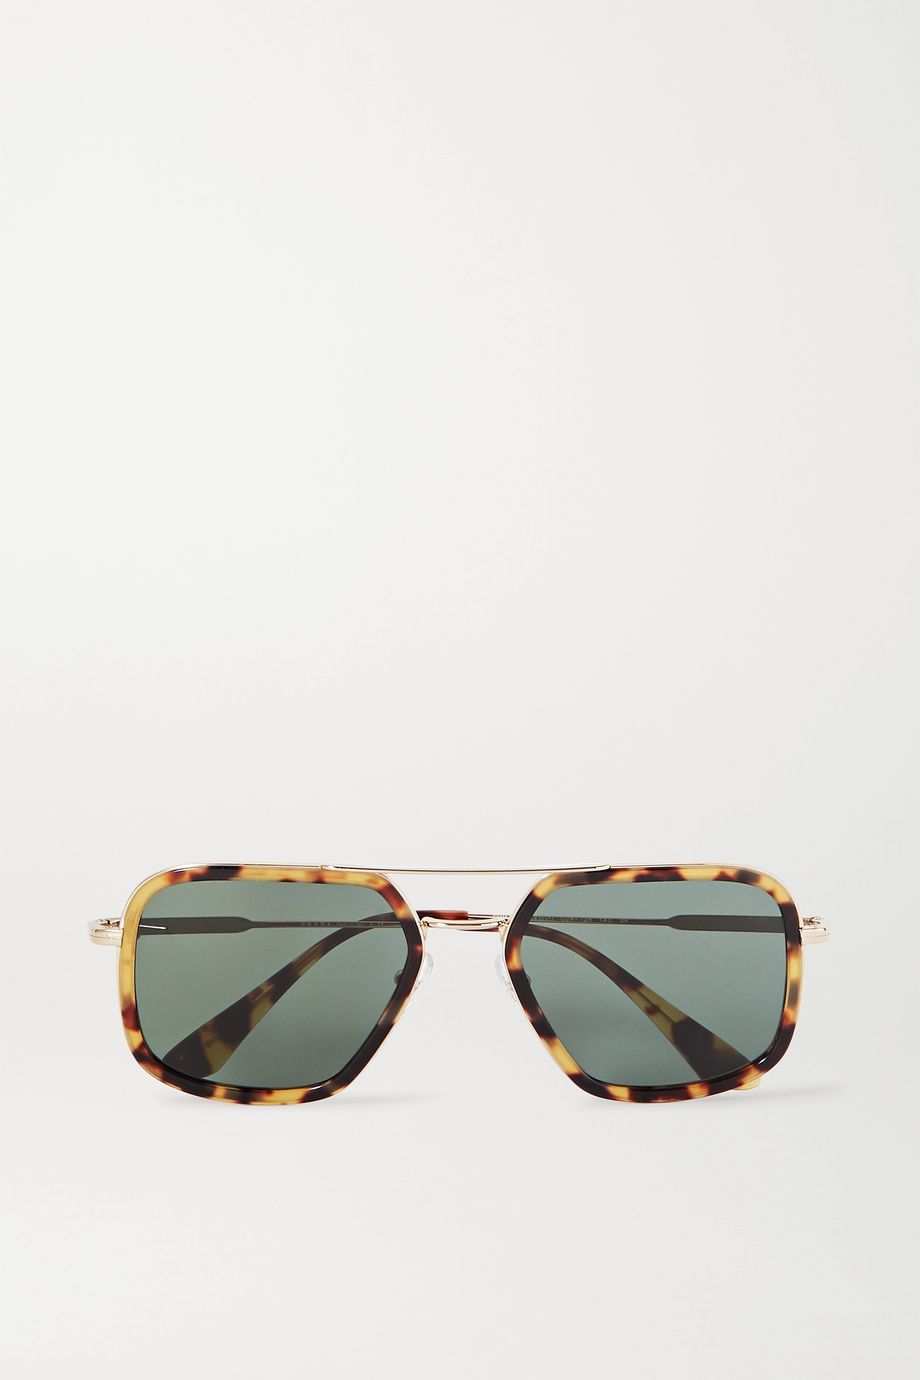 Prada Aviator-style gold-tone and tortoiseshell acetate sunglasses